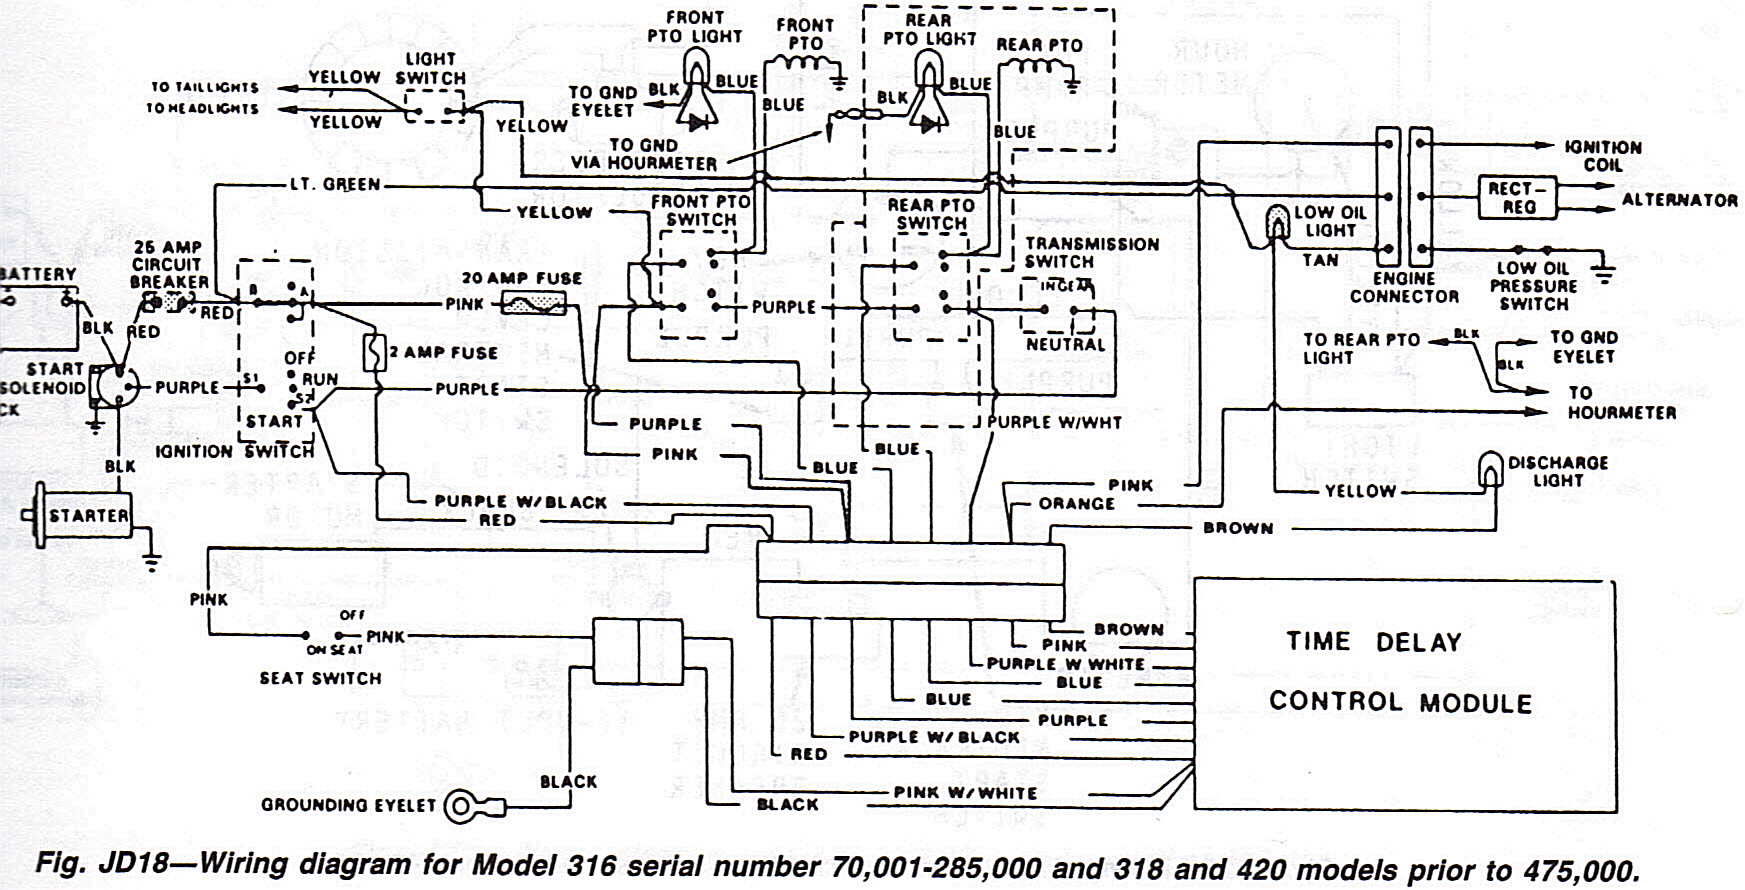 John Deere Wiring Diagram For H | Manual E-Books - John Deere Wiring Diagram